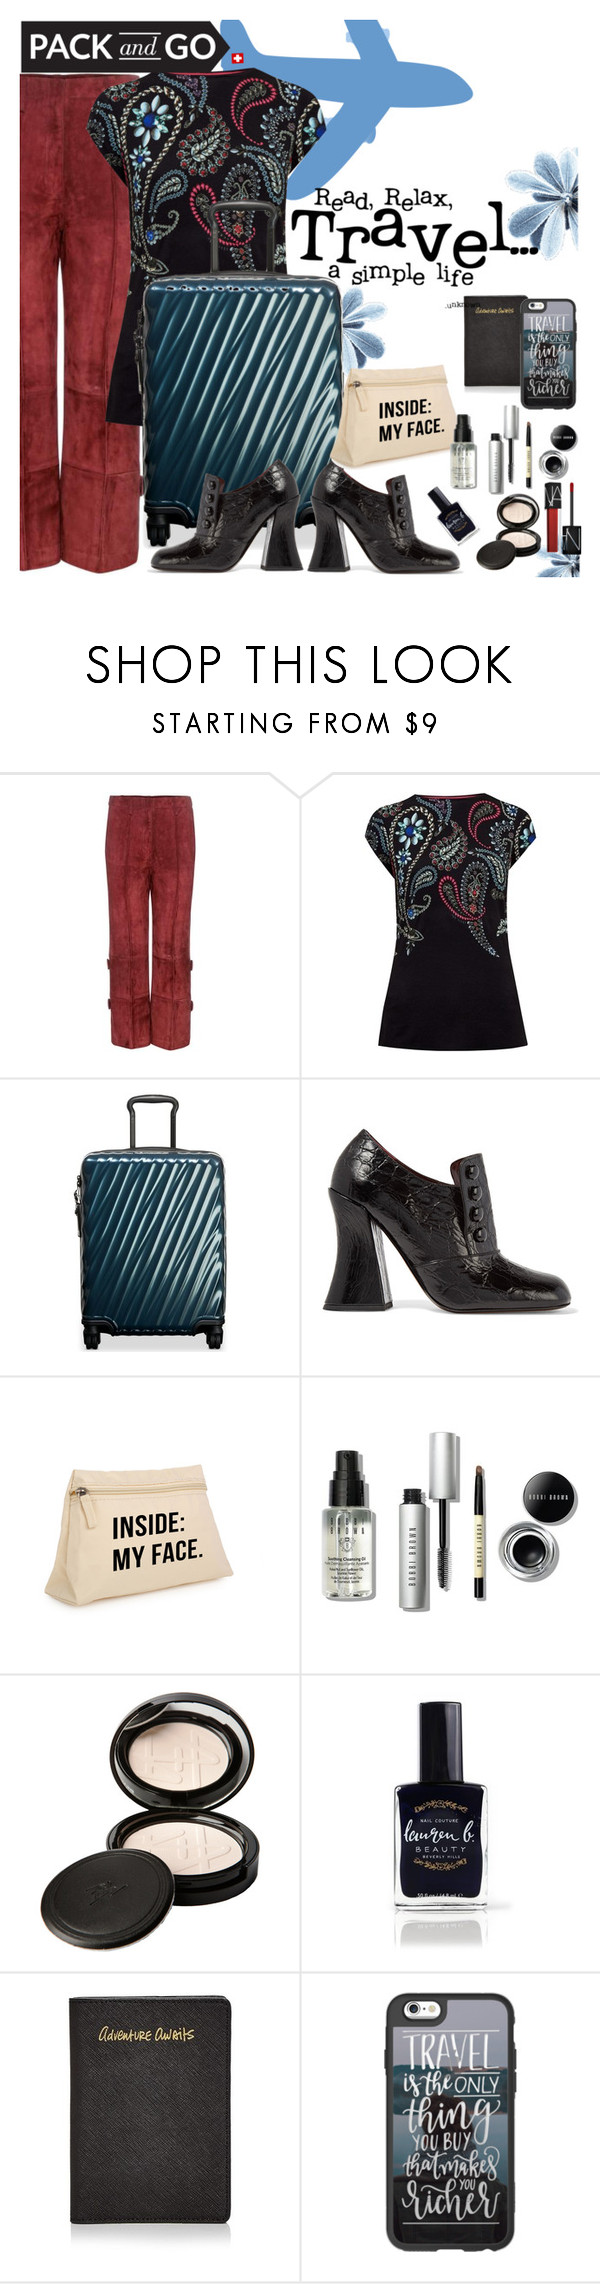 """Pack and Go:  Winter Getaway"" by juliehooper ❤ liked on Polyvore featuring Edun, Ted Baker, Tumi, Marc Jacobs, Bobbi Brown Cosmetics, Beauty Is Life, Lauren B. Beauty, Rebecca Minkoff, Casetify and NARS Cosmetics"